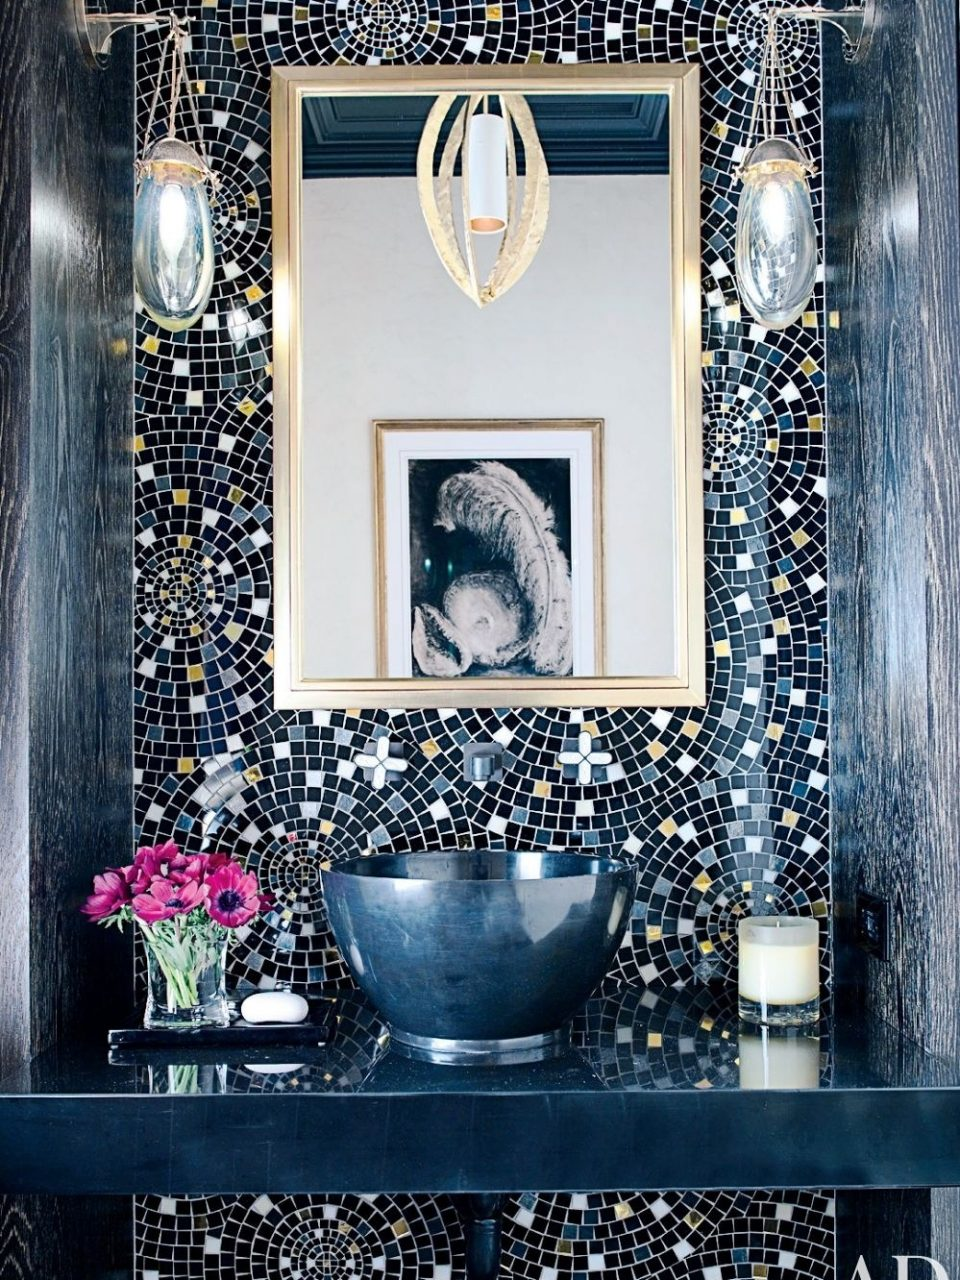 Creative Bathroom Tile Inspiration For Your Next Remodel